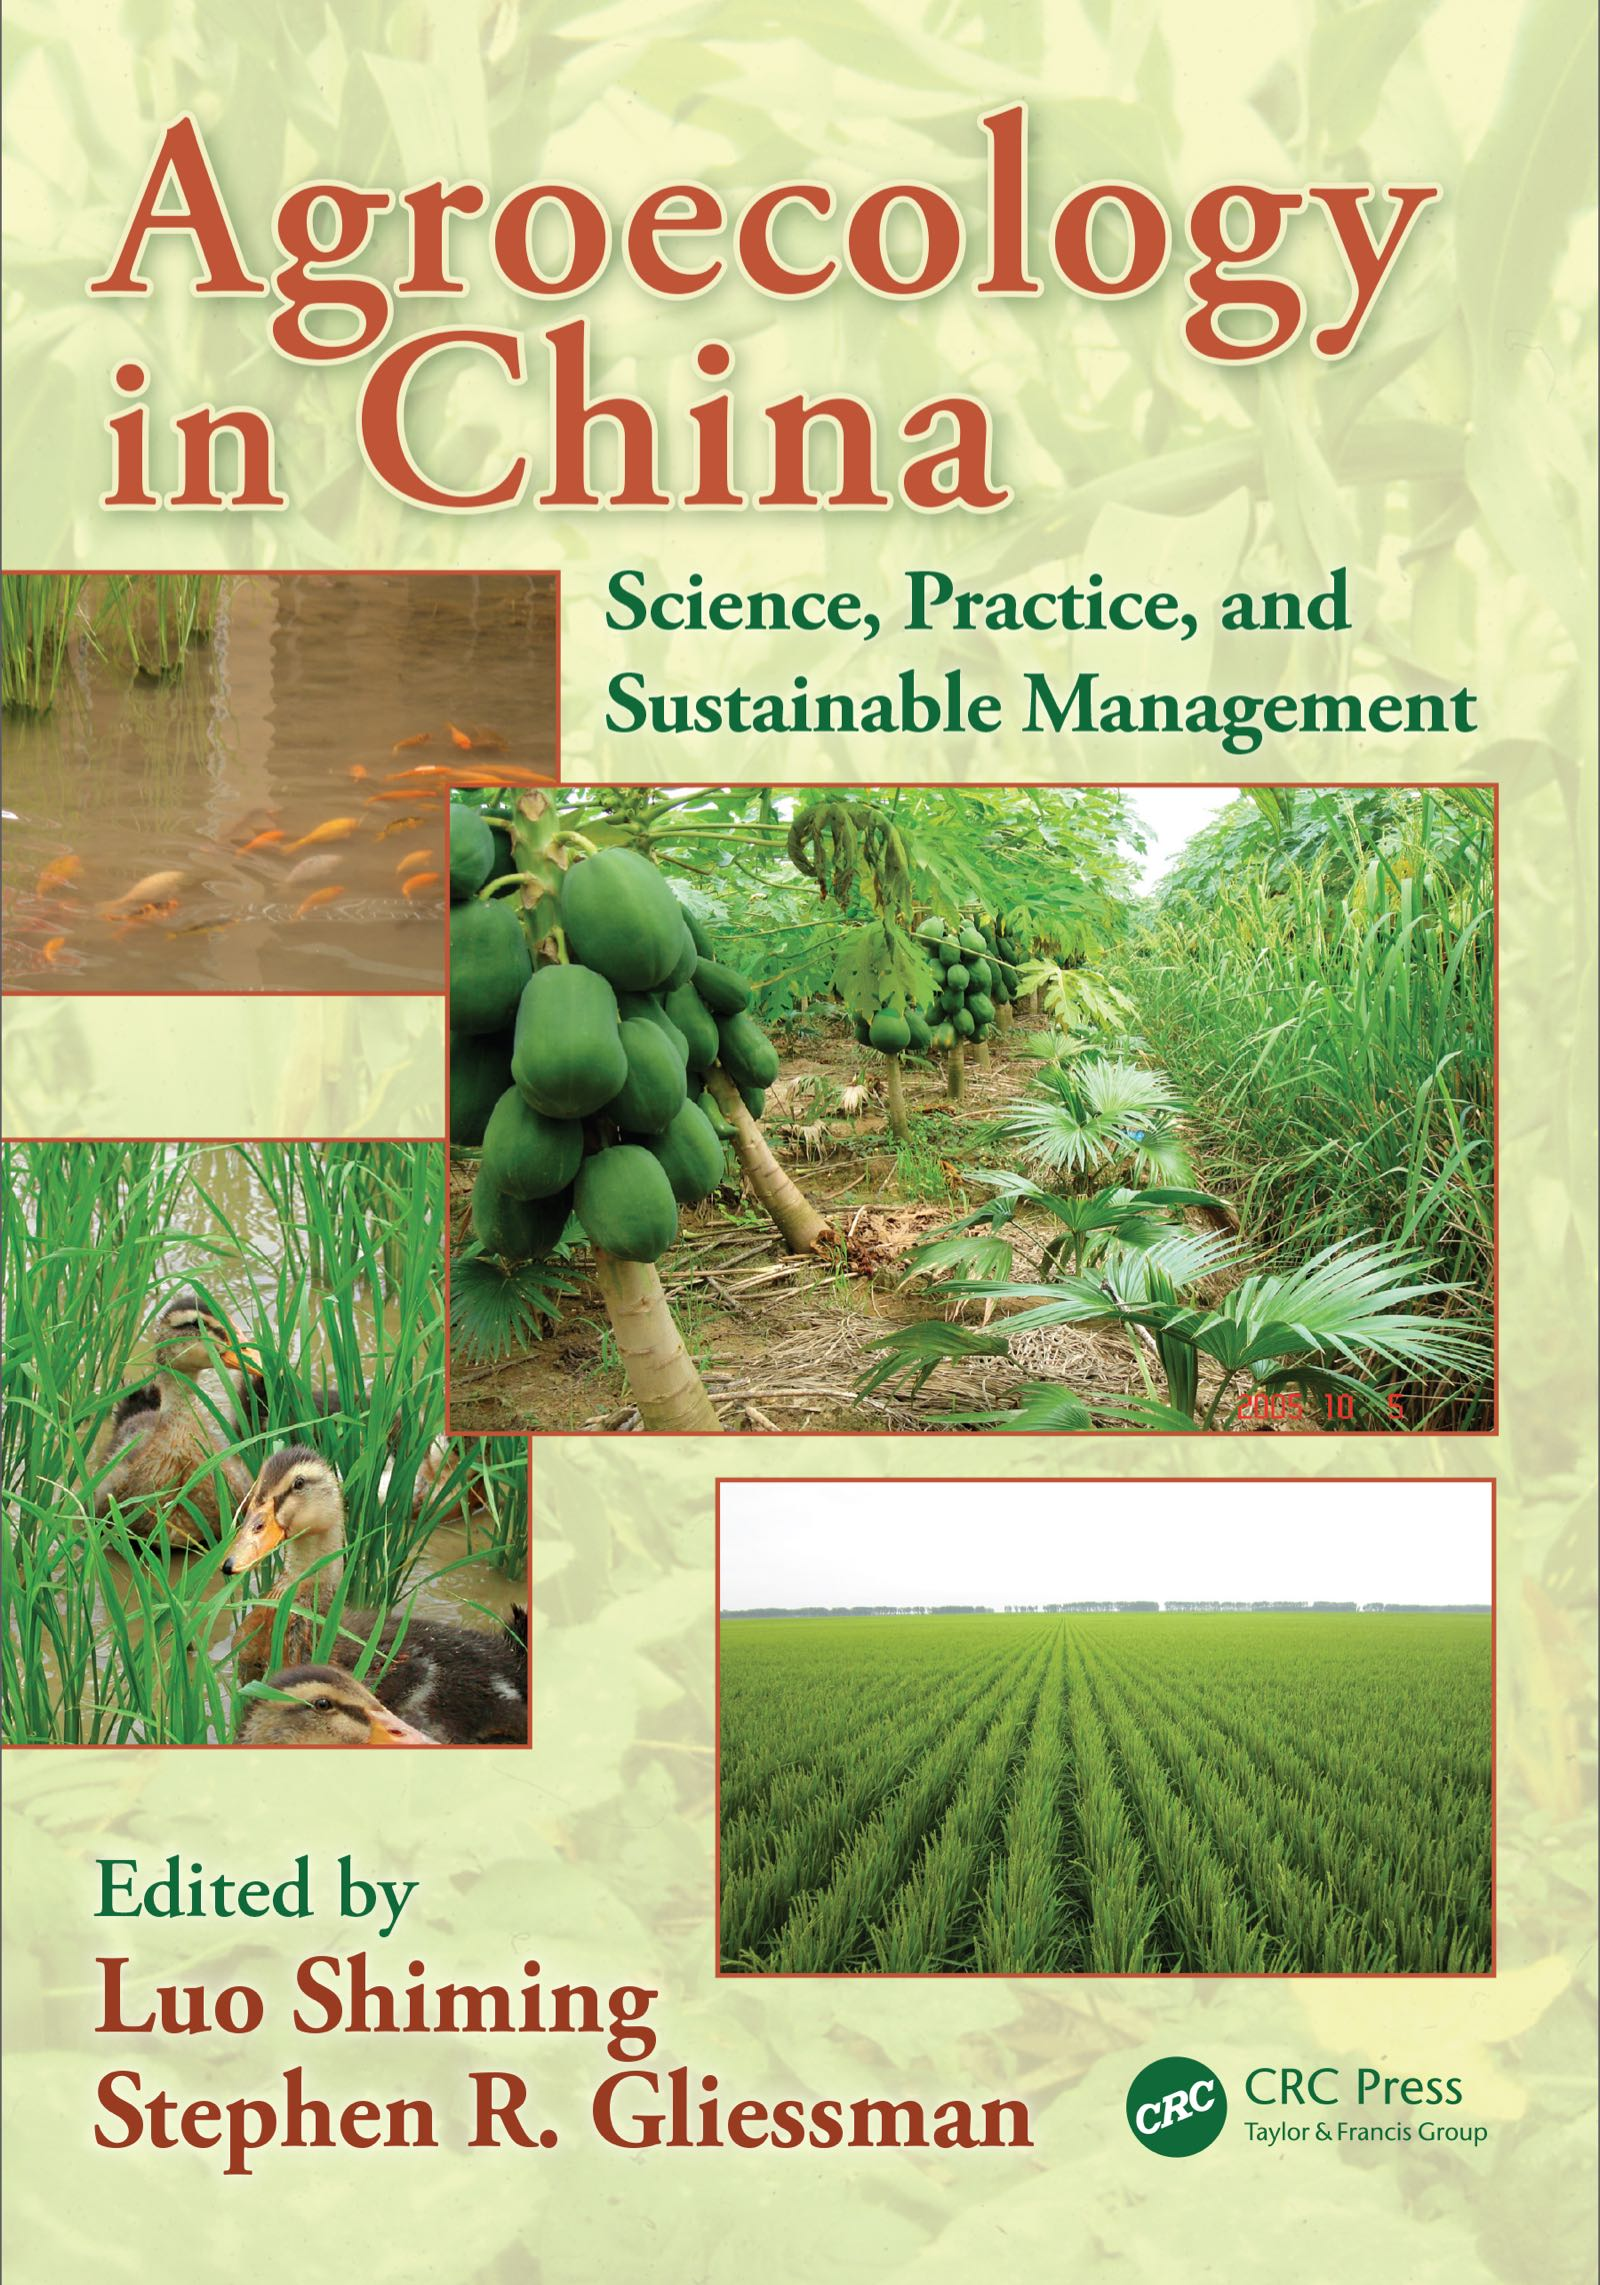 Agroecology in China: Science, Practice, and Sustainable Management book cover